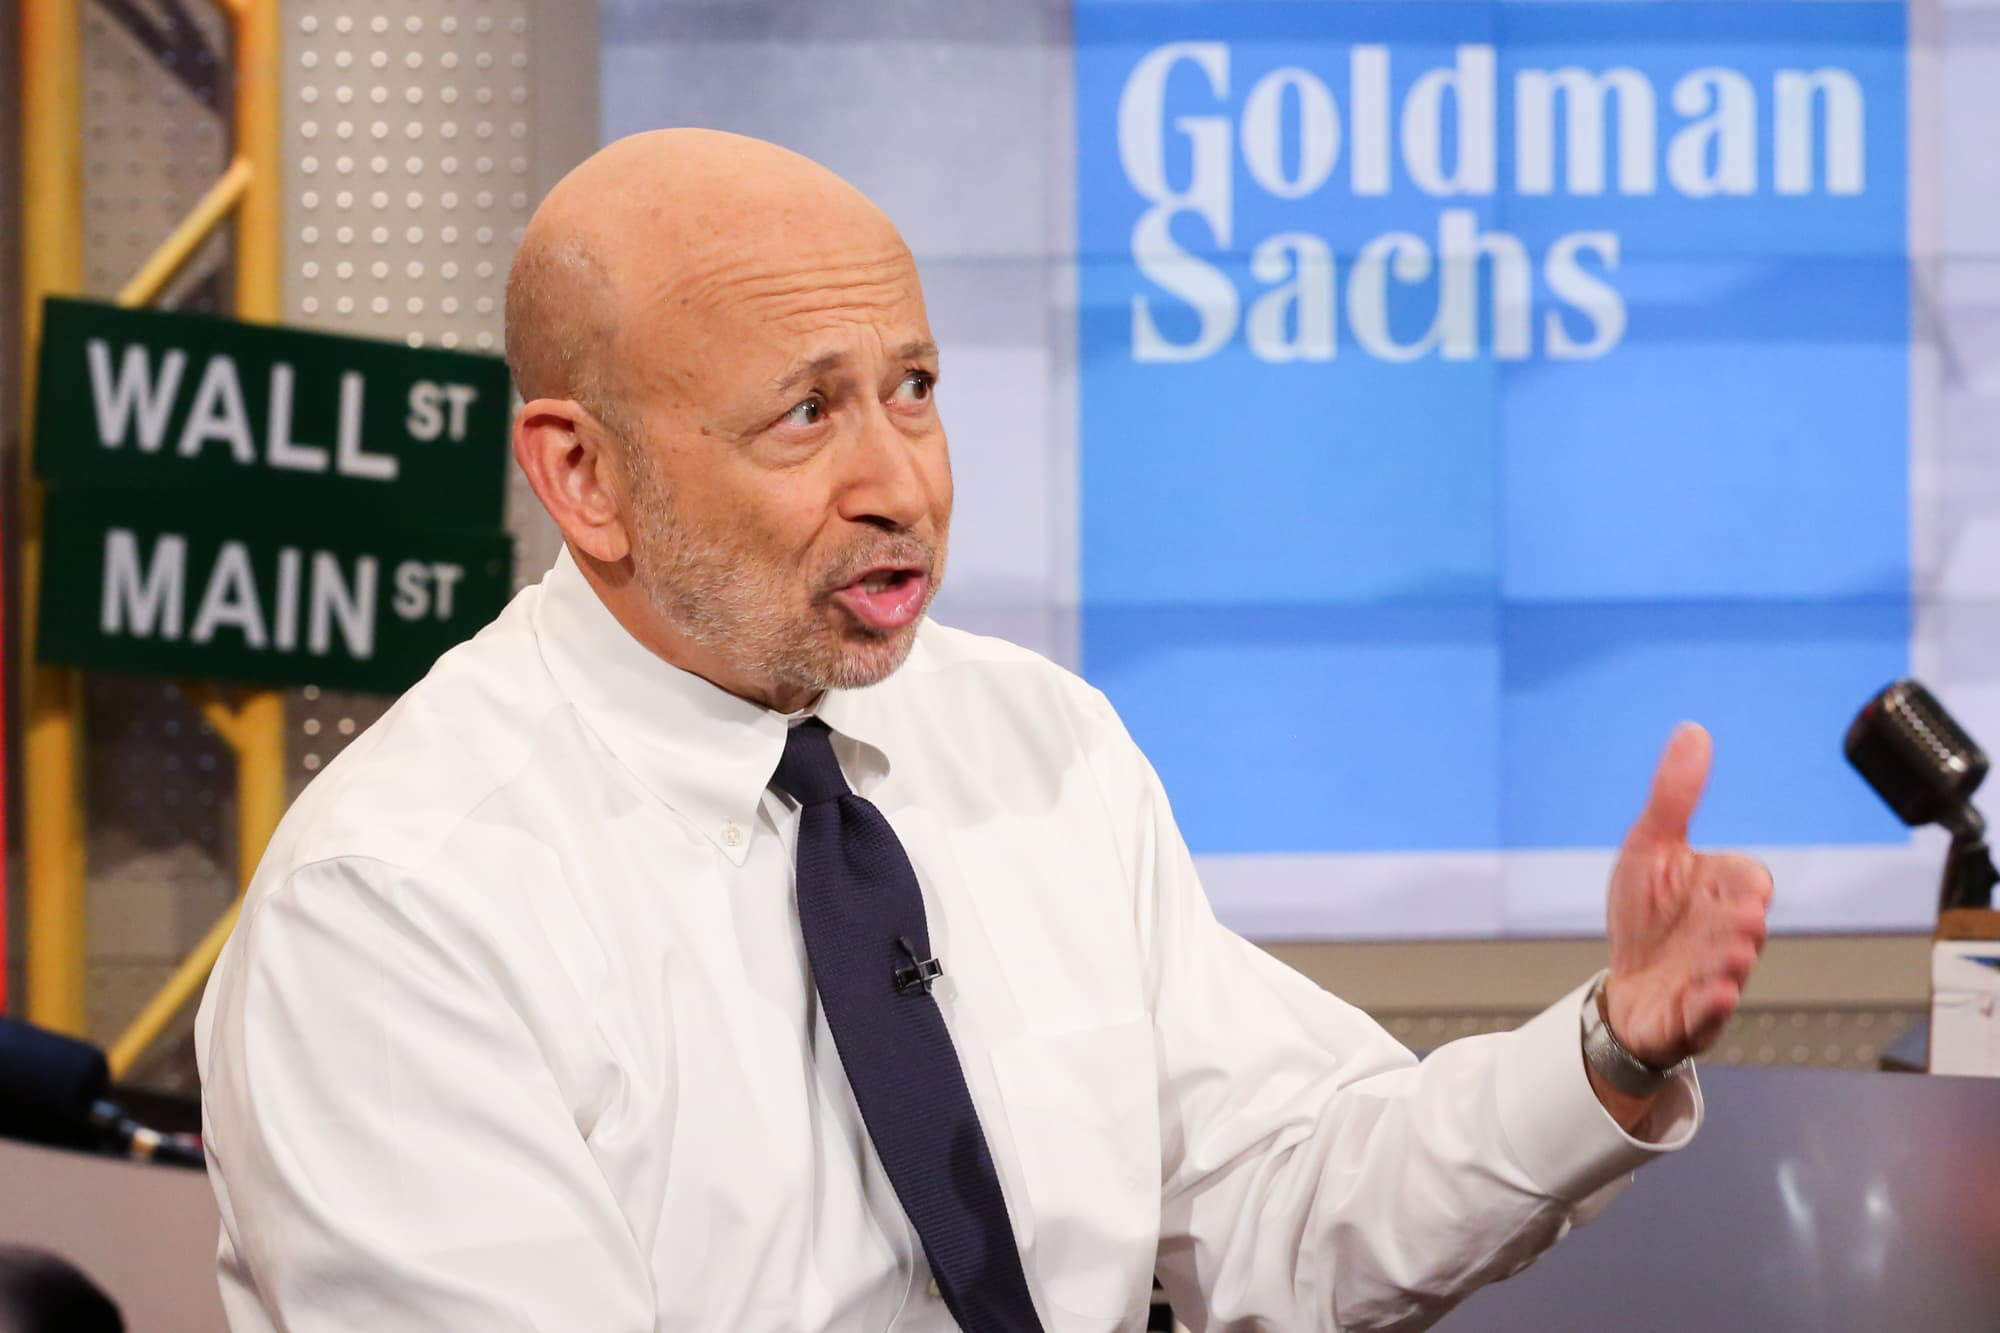 Goldman Sachs is dangling its elite partner title to lure